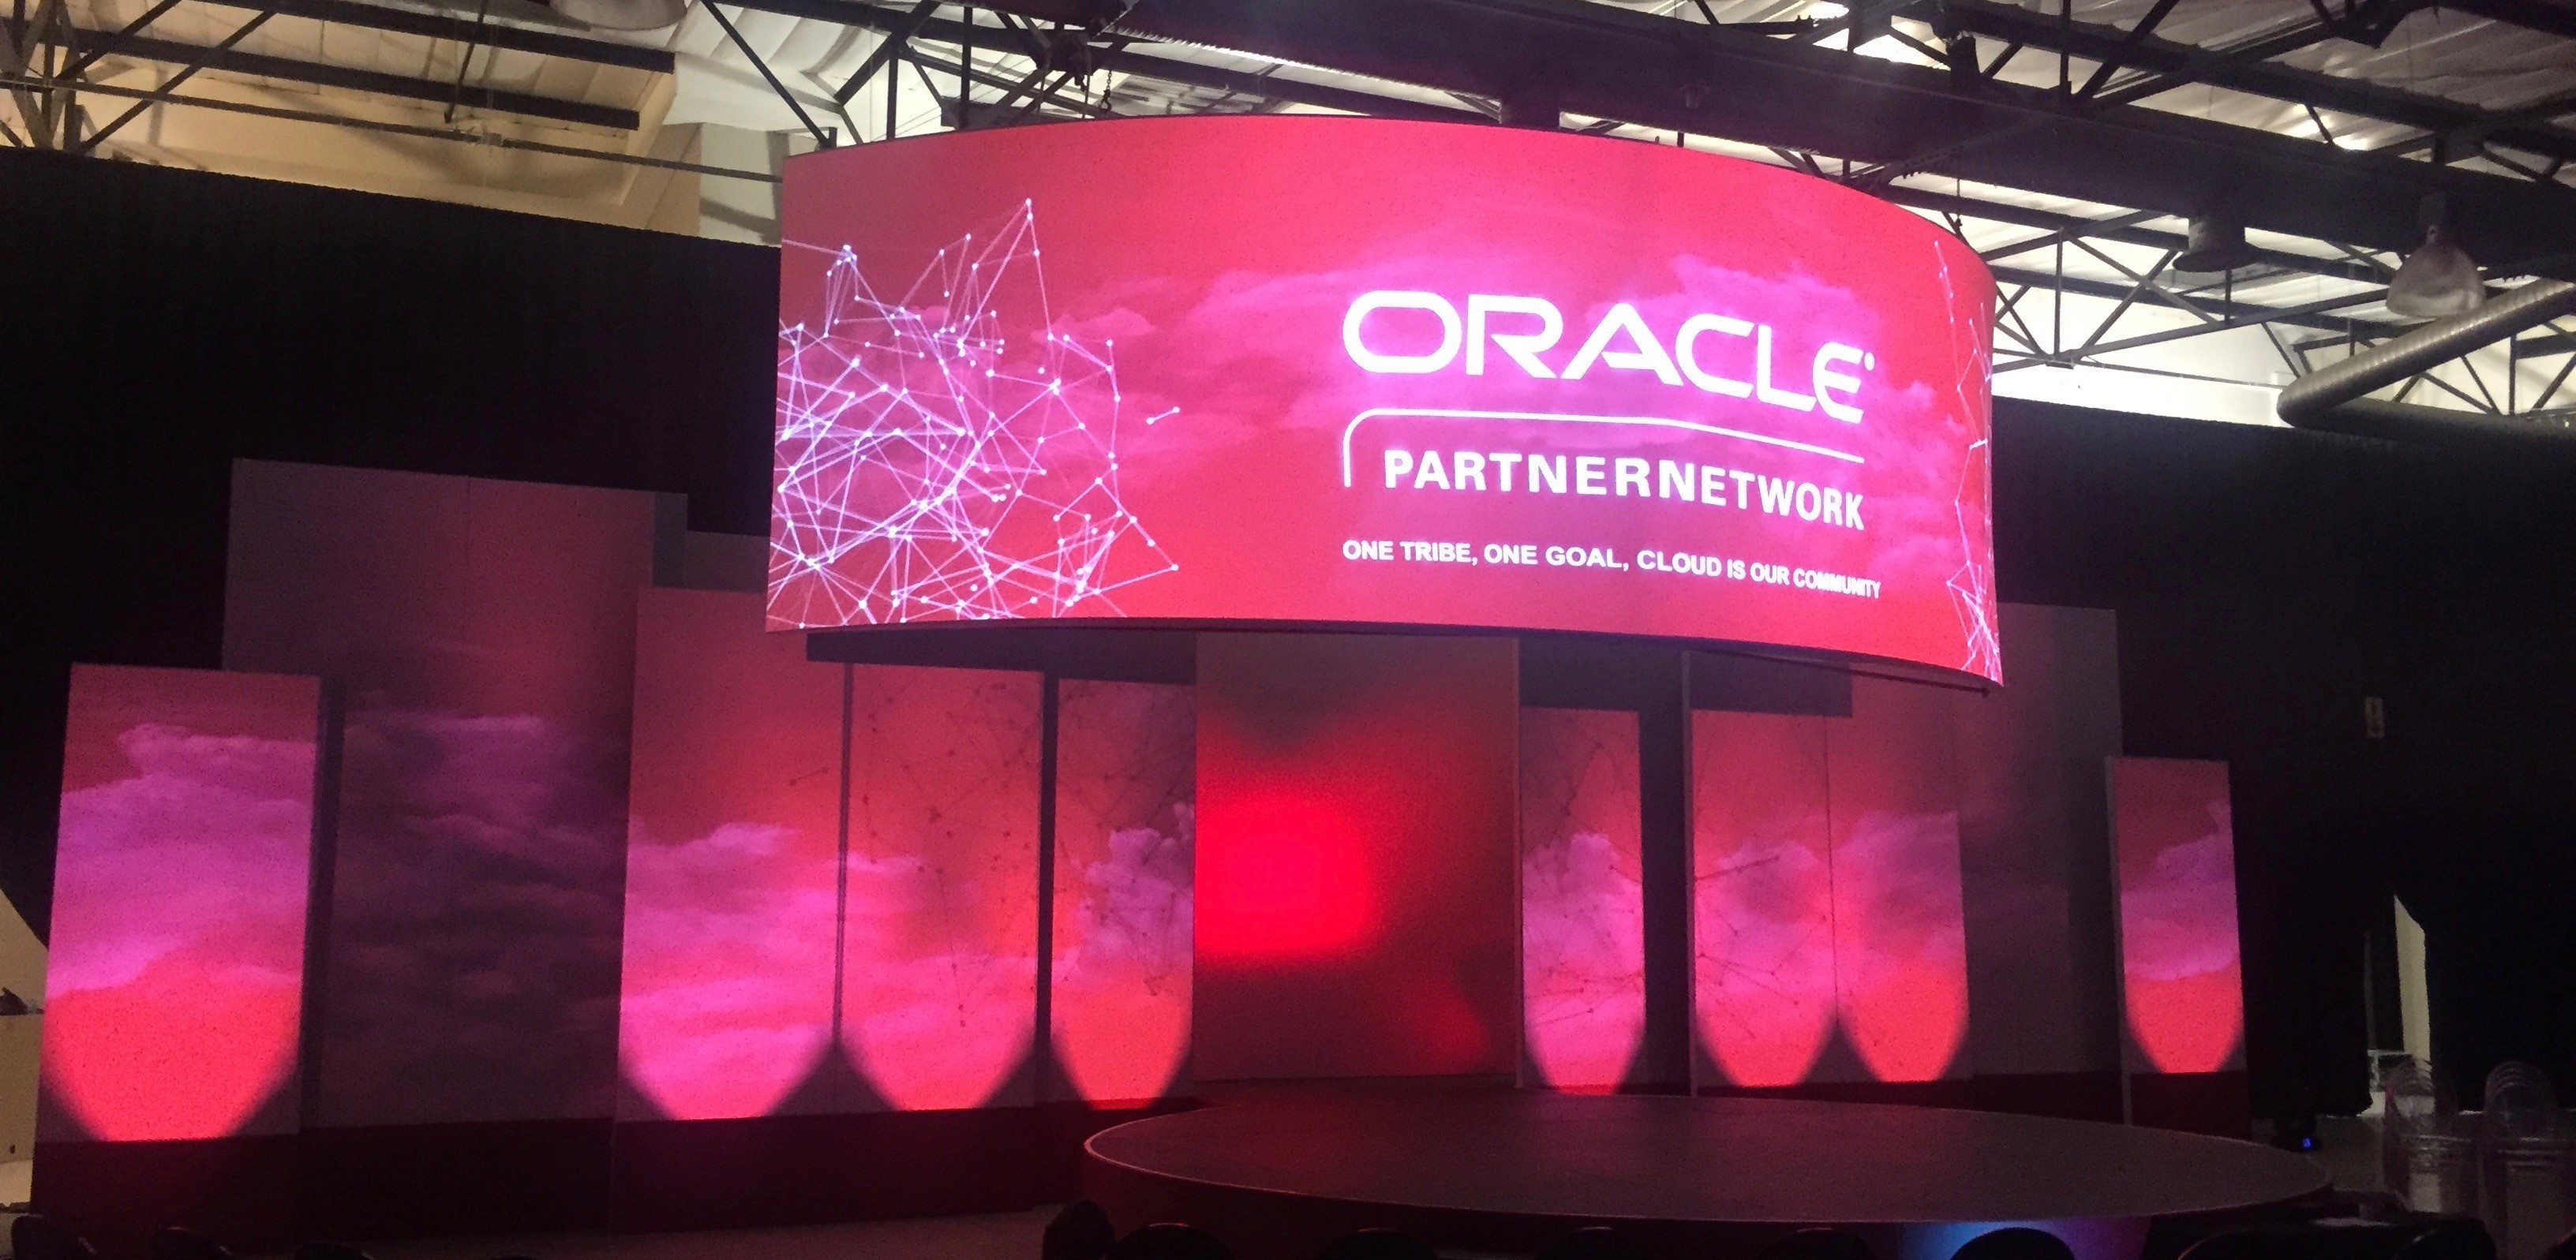 Oracle Partner Network - Circular projection & Mapping